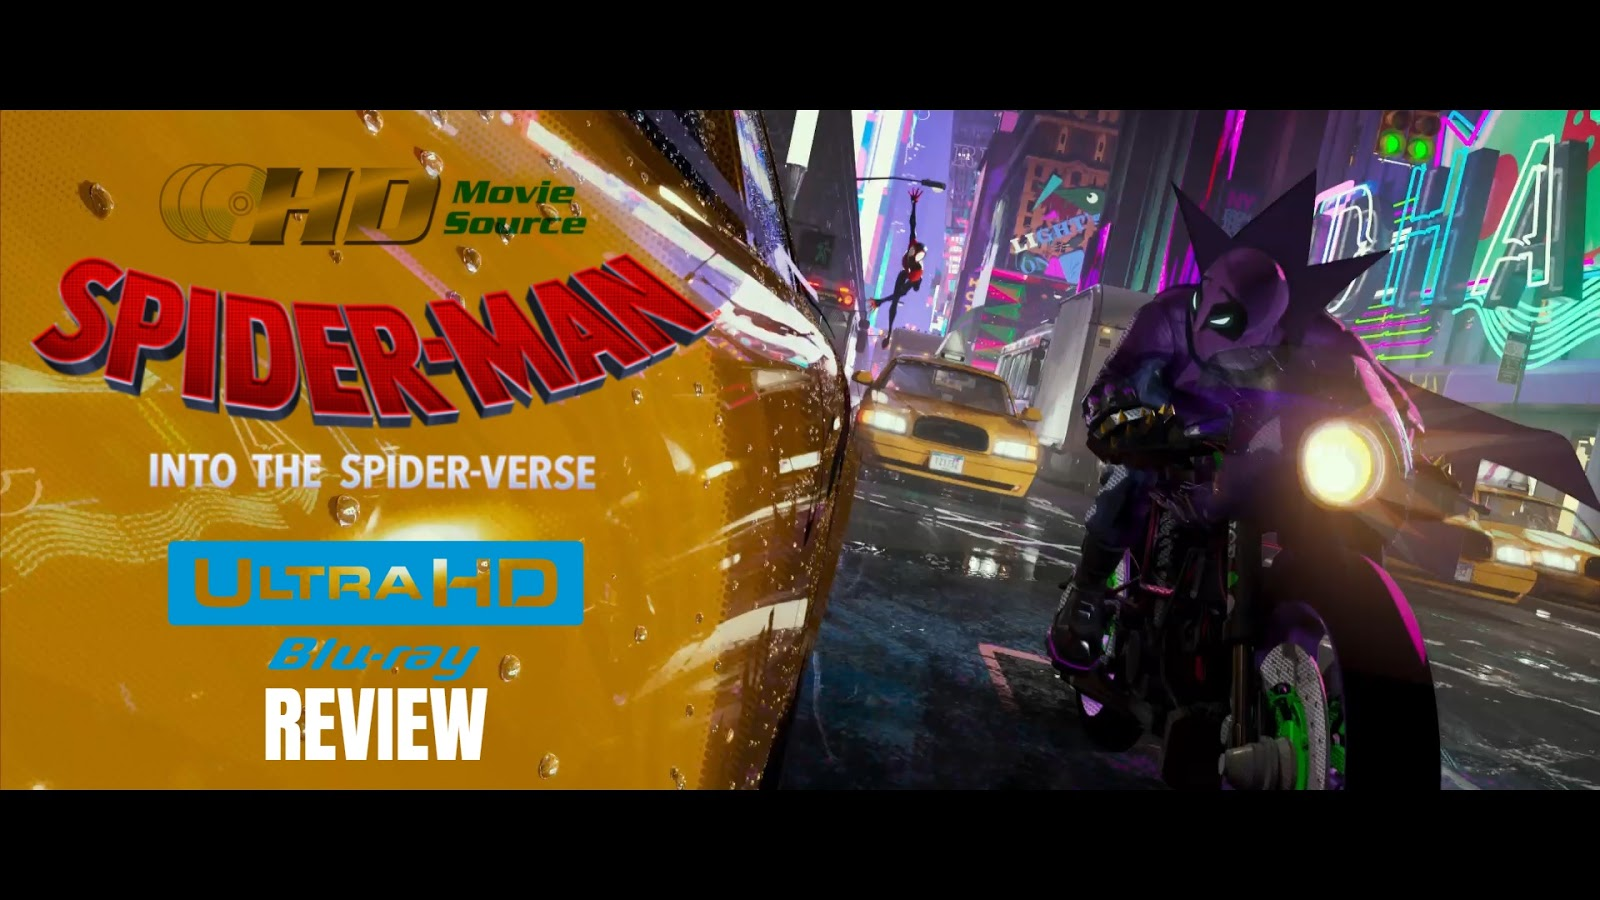 Spider-Man: Into the Spider-Verse 4K Ultra HD Blu-ray Blu-ray Review